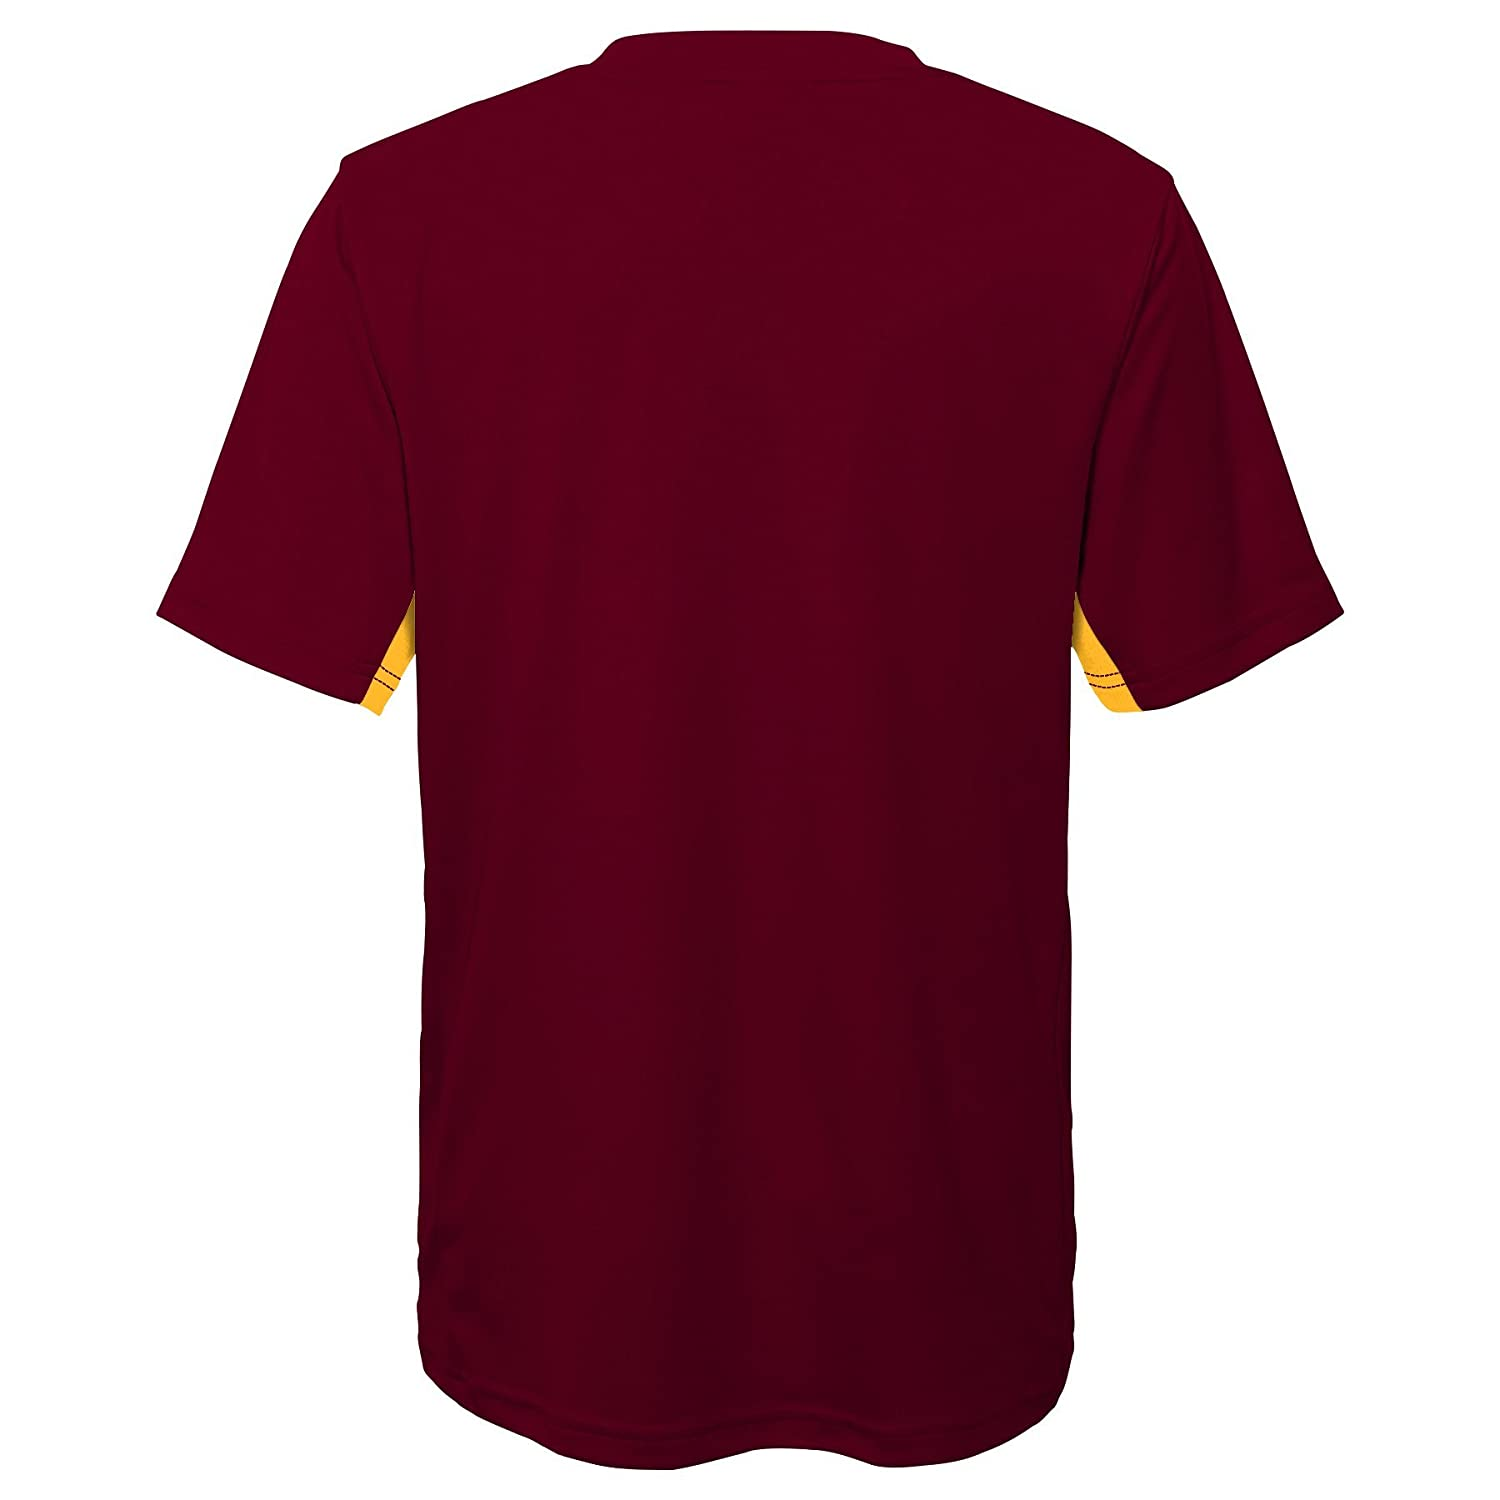 Youth Medium 10-12 NCAA by Outerstuff NCAA Arizona State Sun Devils Youth Boys Mainframe: Short Sleeve Performance Top Maroon